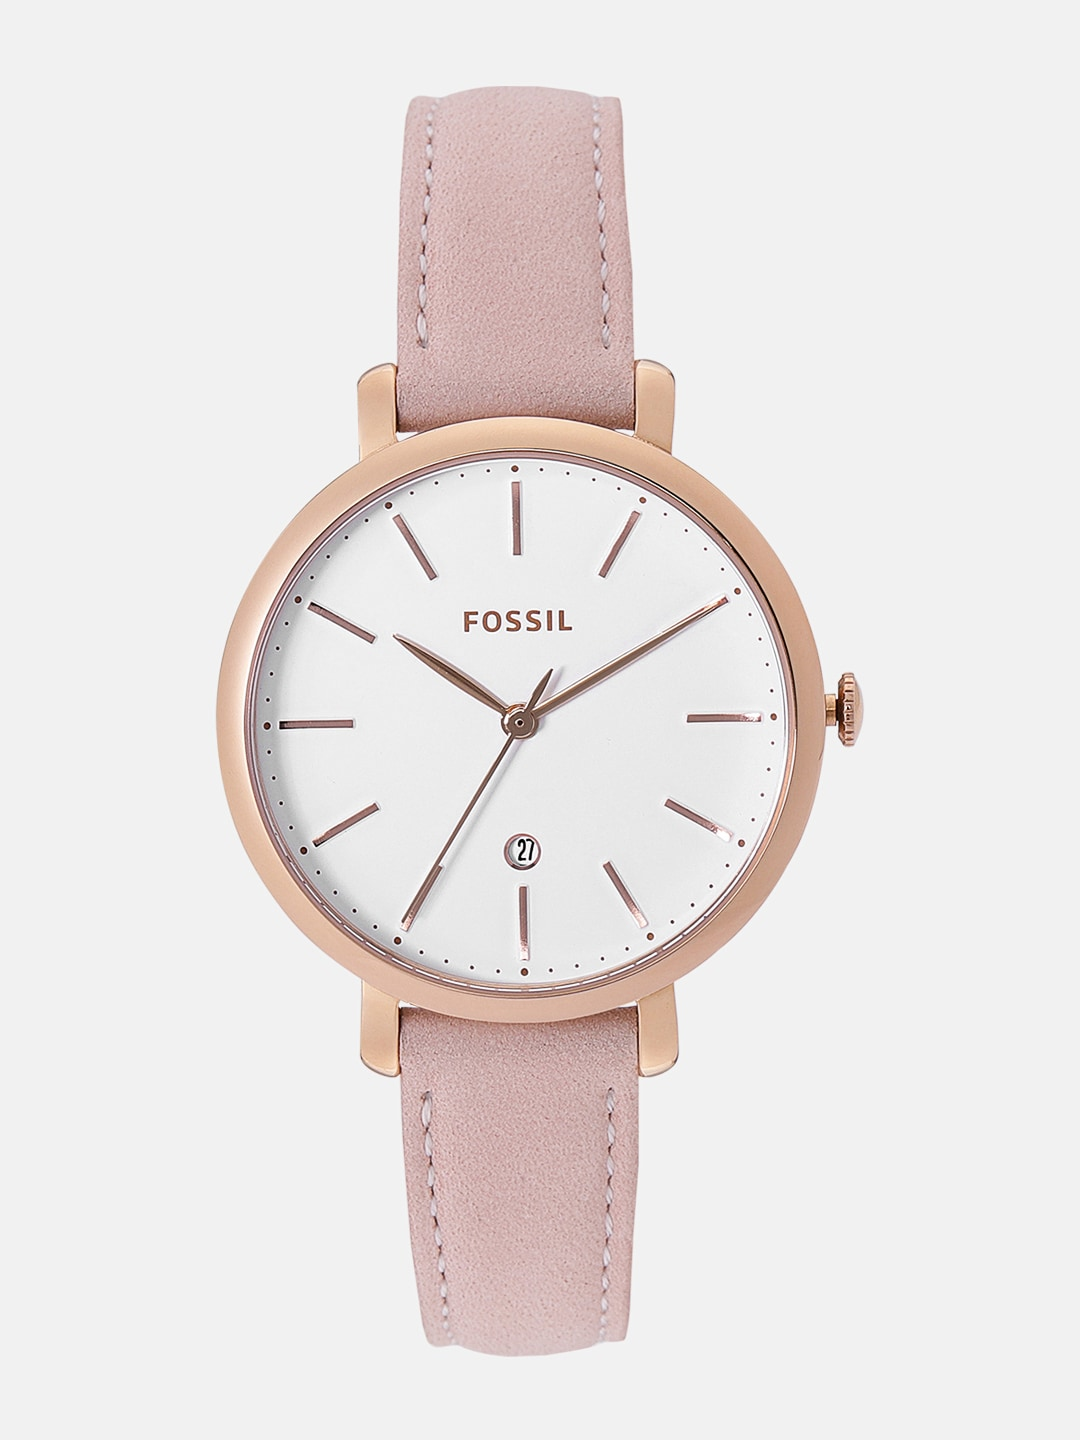 00a40d1973 Fossil Women White Analogue Watch ES4369_OR1